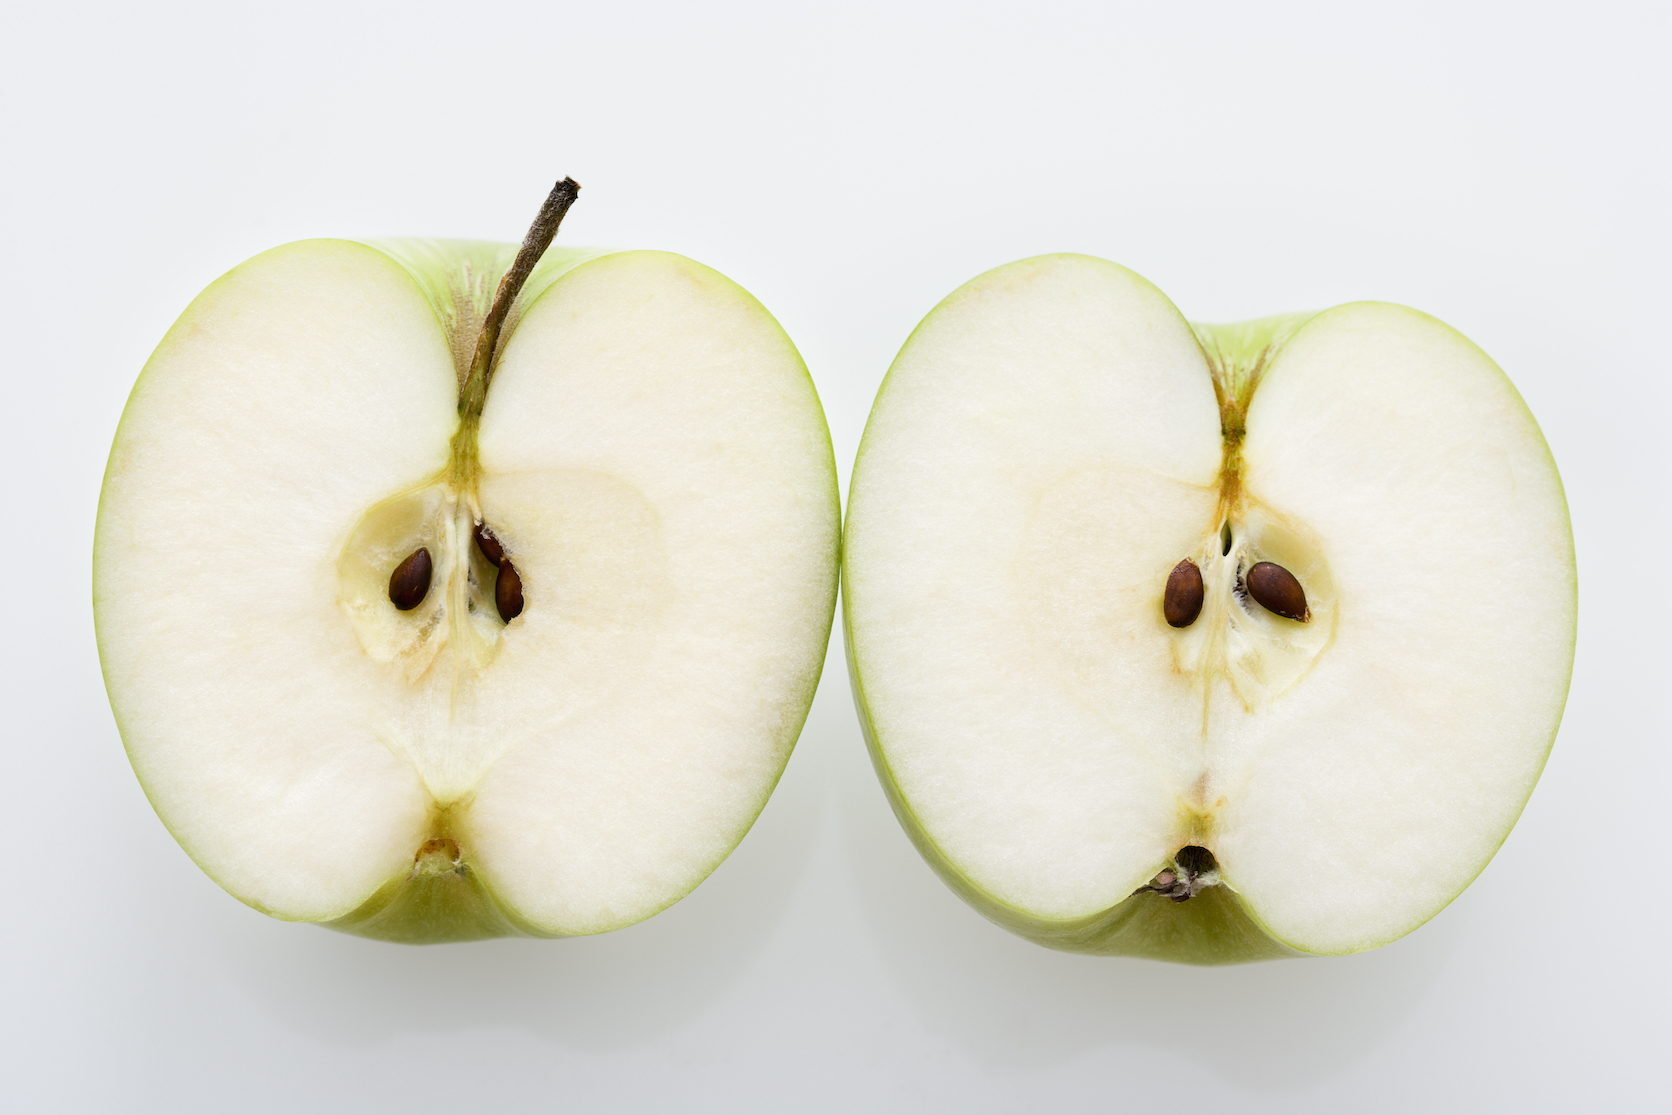 Secret Beauty Club When Should I Use A Product With Apple Seed Extract?